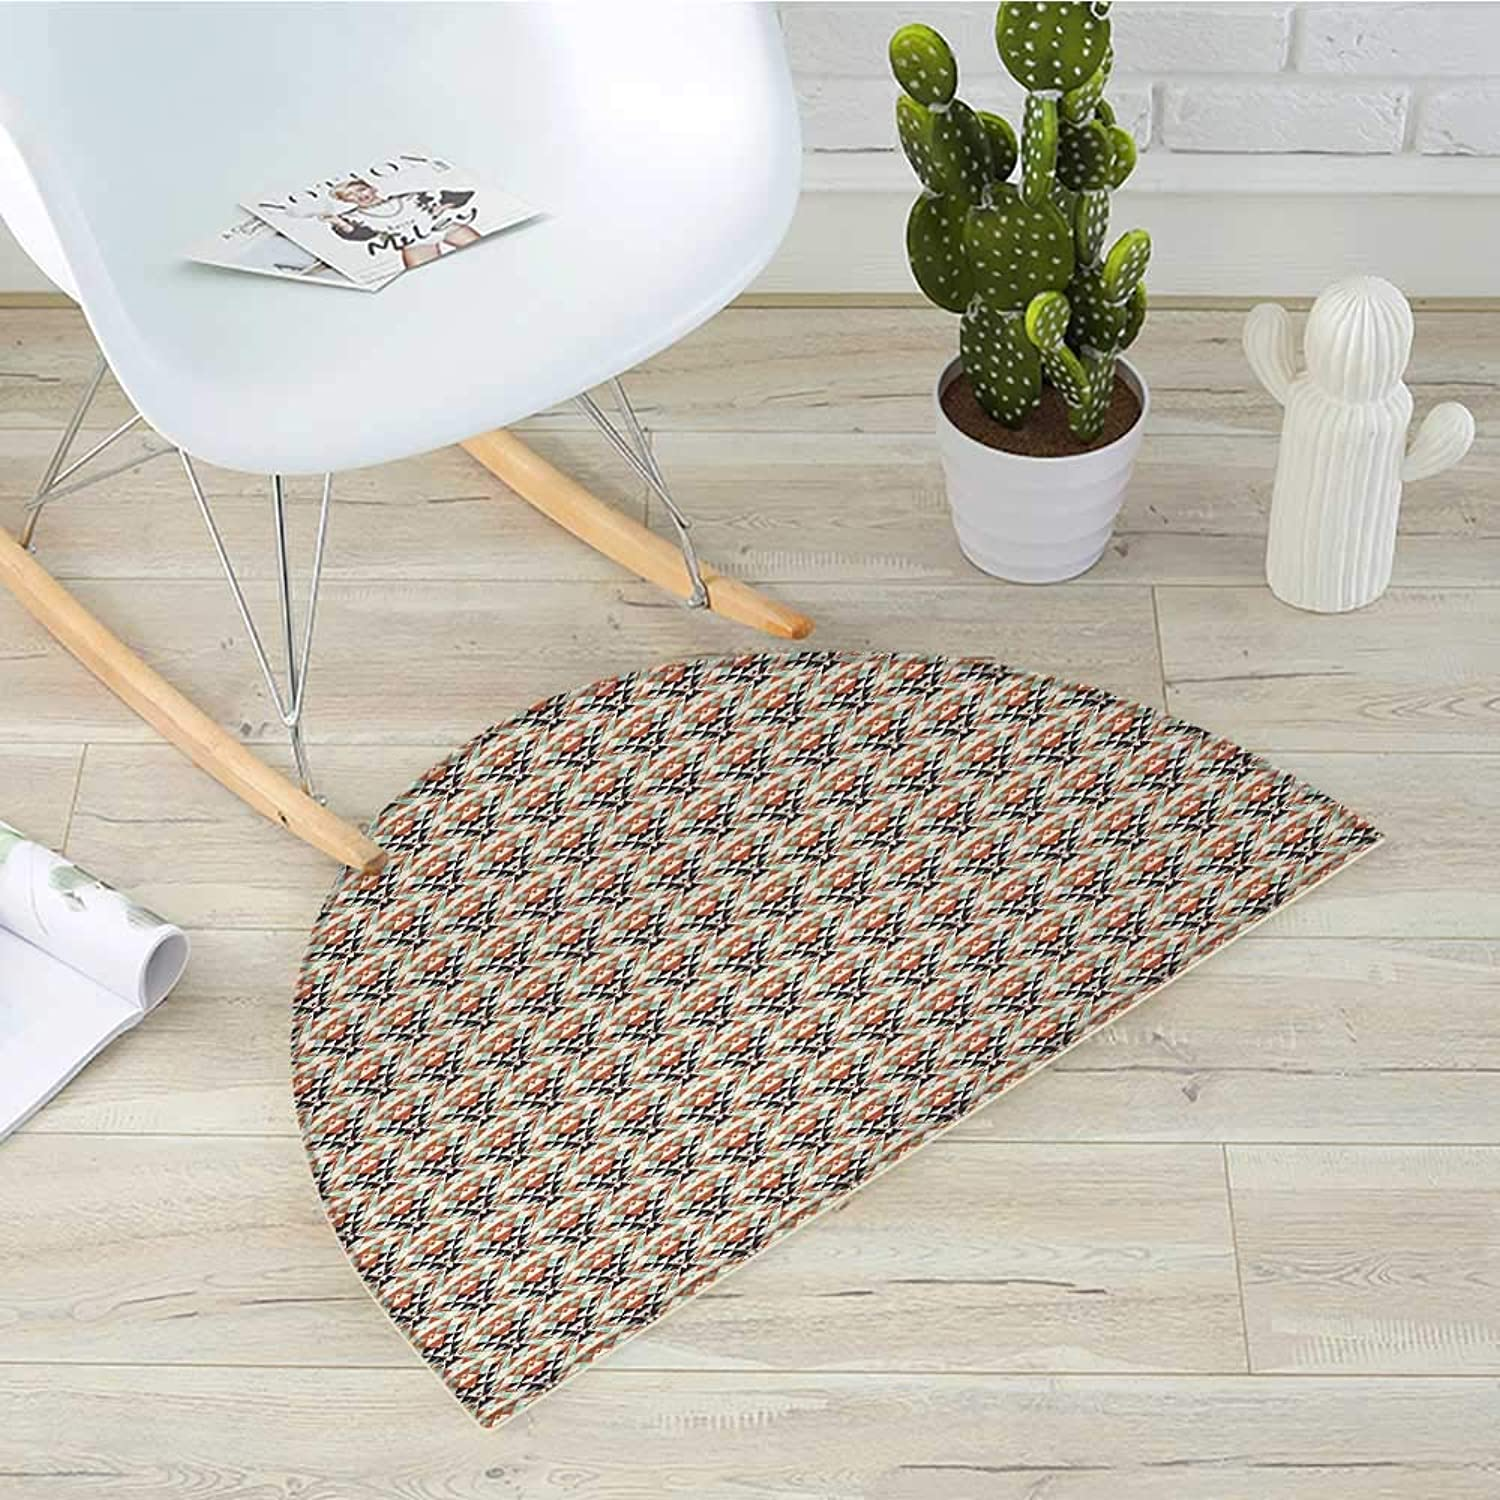 Retro Semicircle Doormat Old Fashioned Style Abstract Pattern with Mosaic of Triangles Geometrical Illusion Halfmoon doormats H 39.3  xD 59  Multicolor